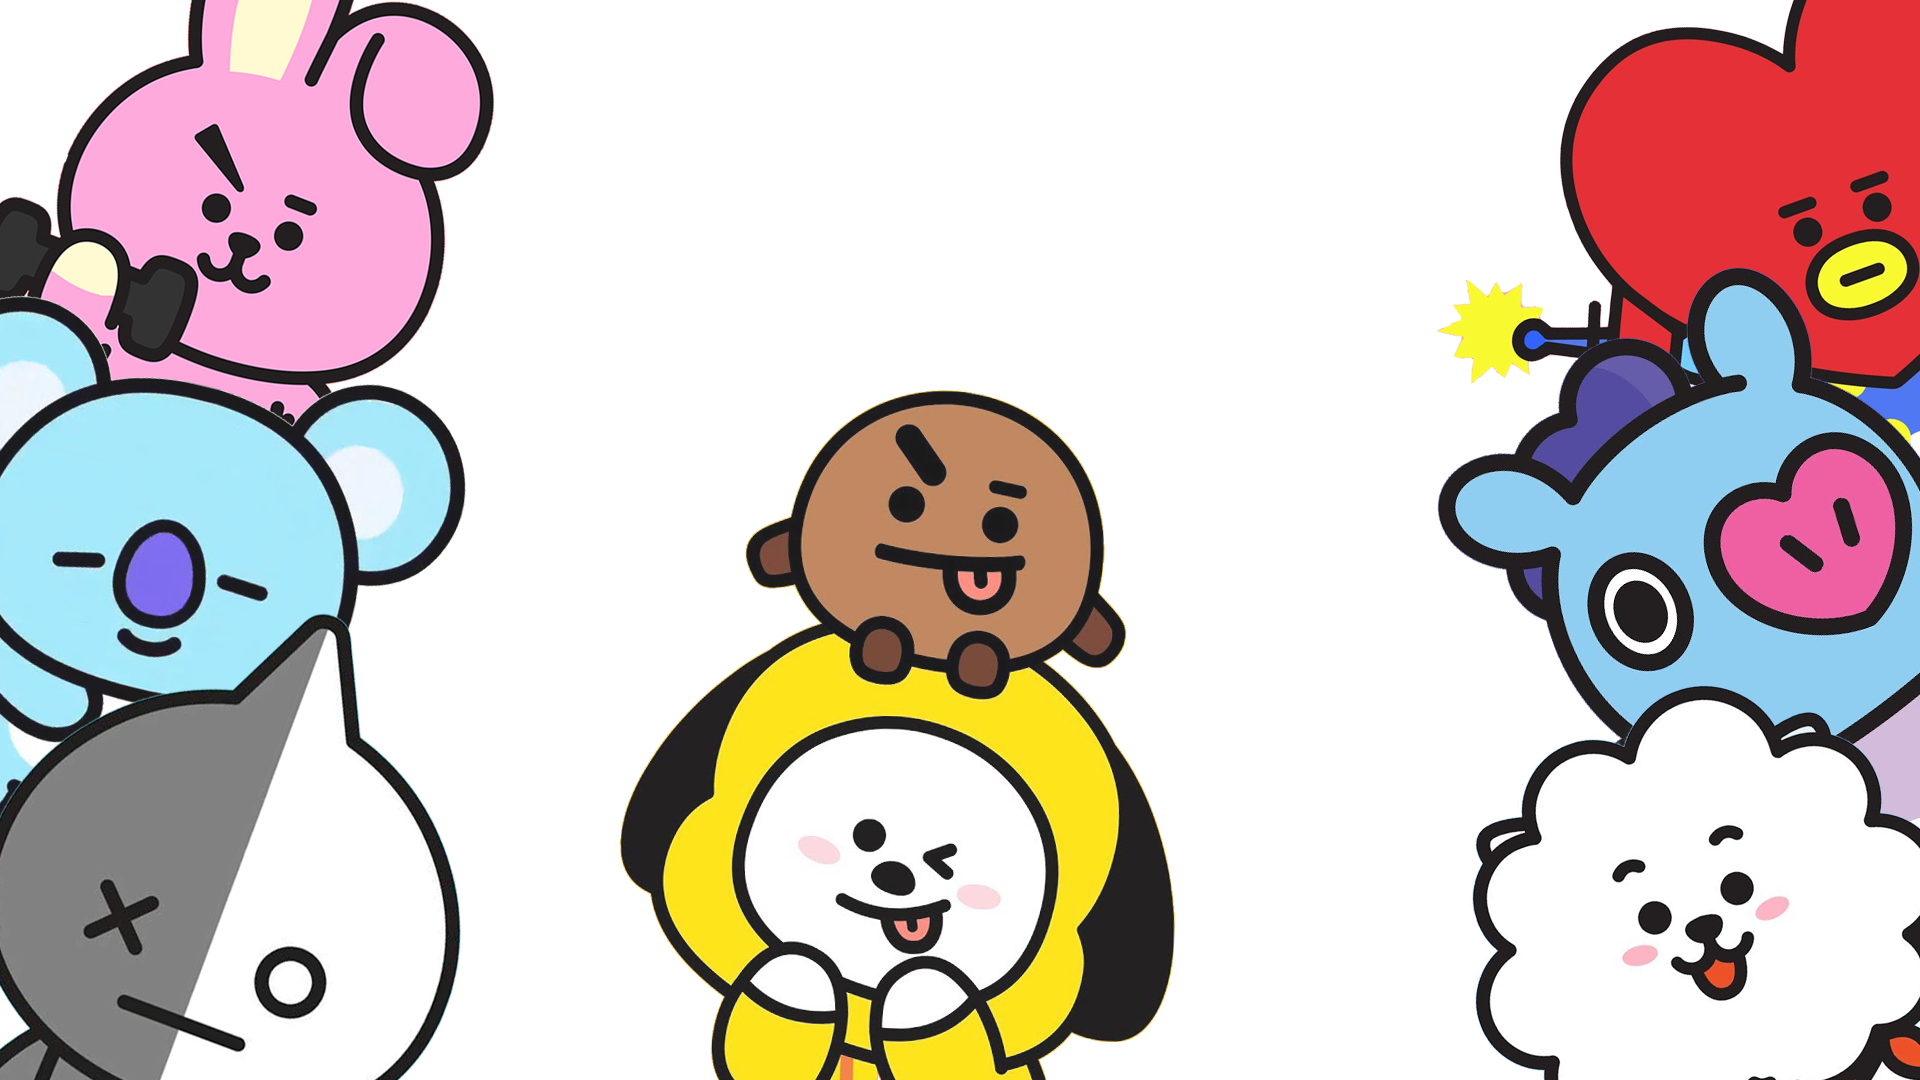 Bt21 Desktop Hd Wallpaper Kertas Dinding Wallpaper Lucu Lucu